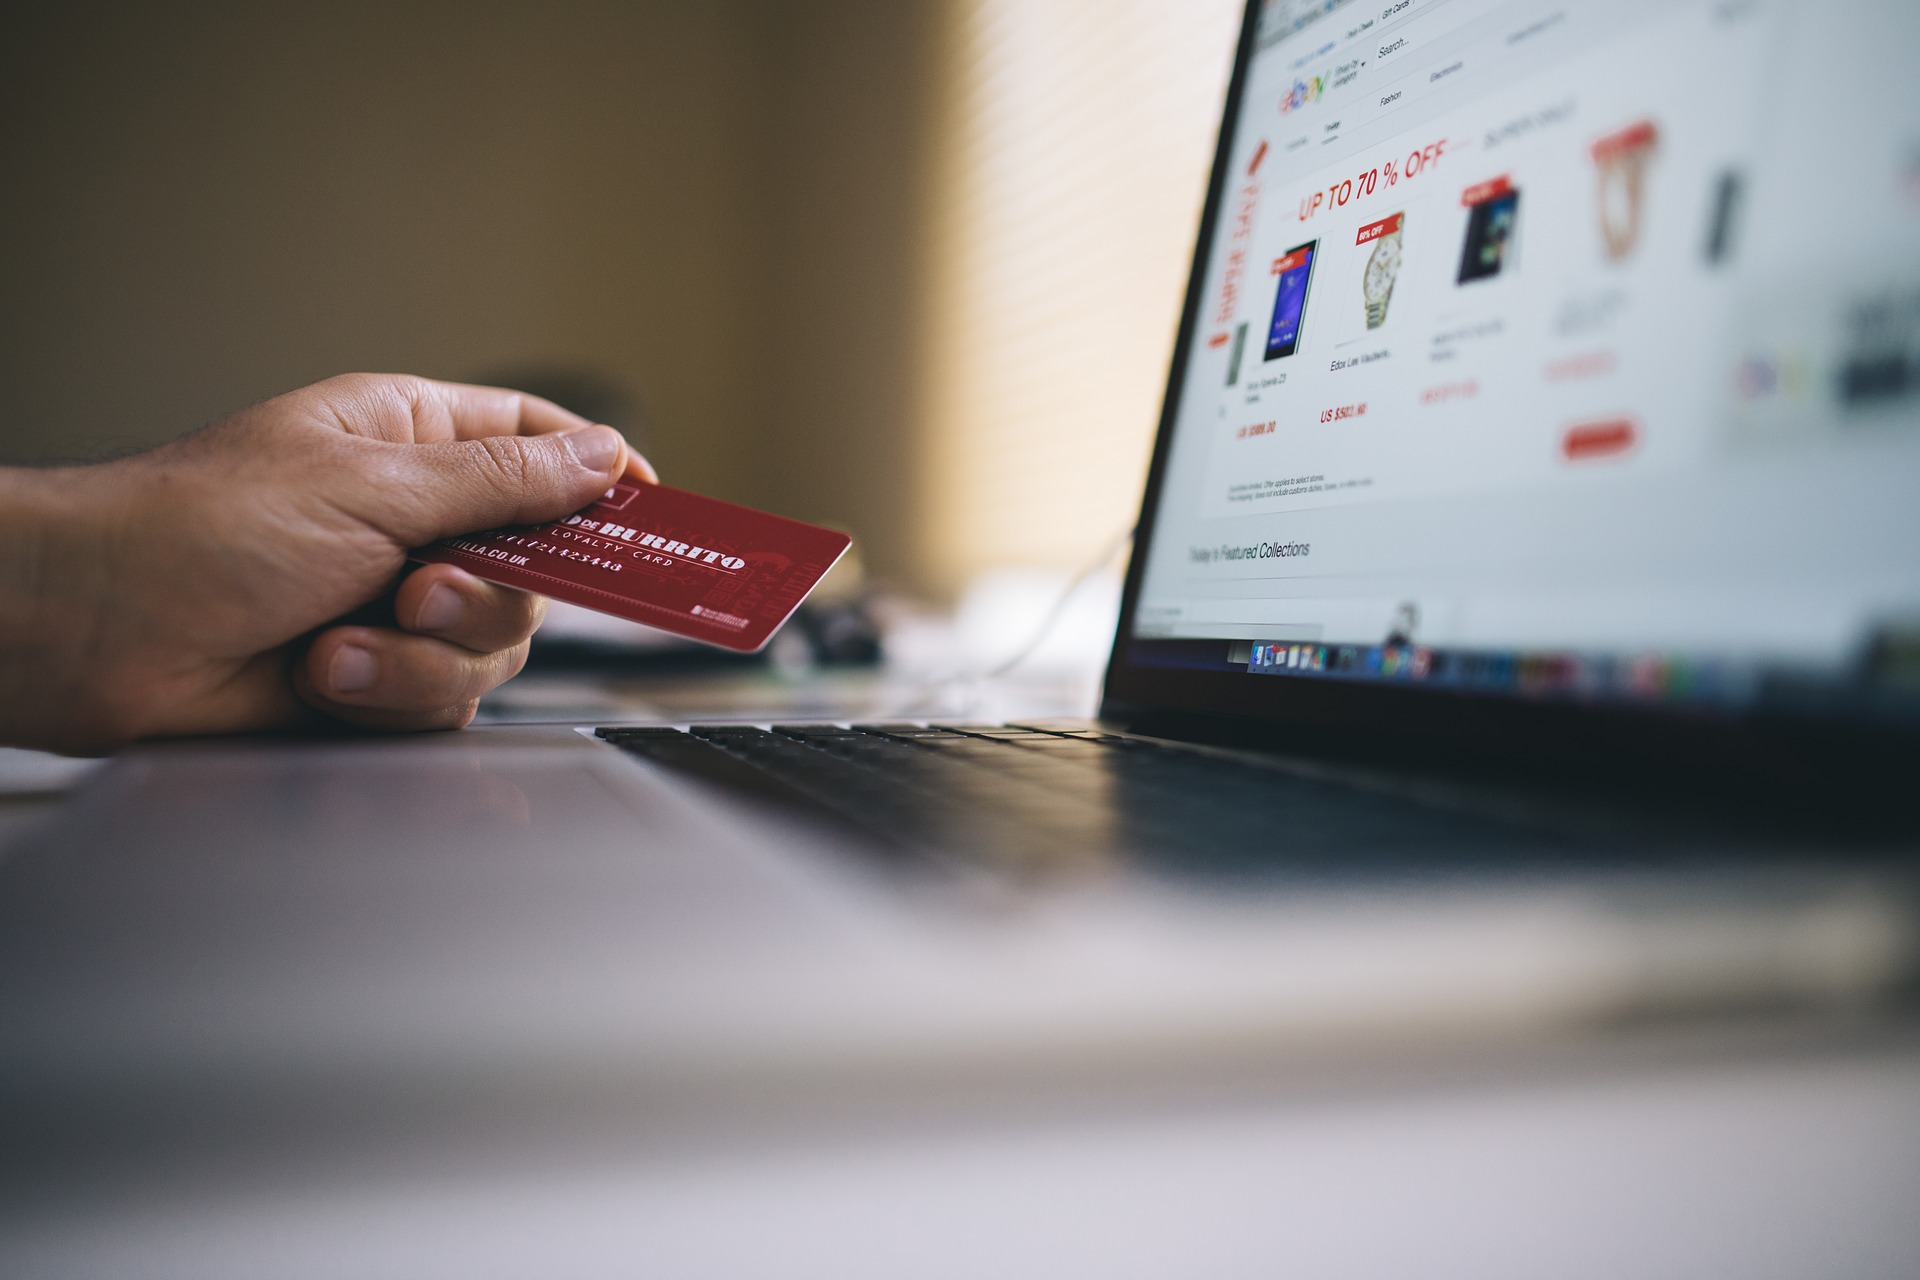 Key logistics capabilities needed to build successful ecommerce ops